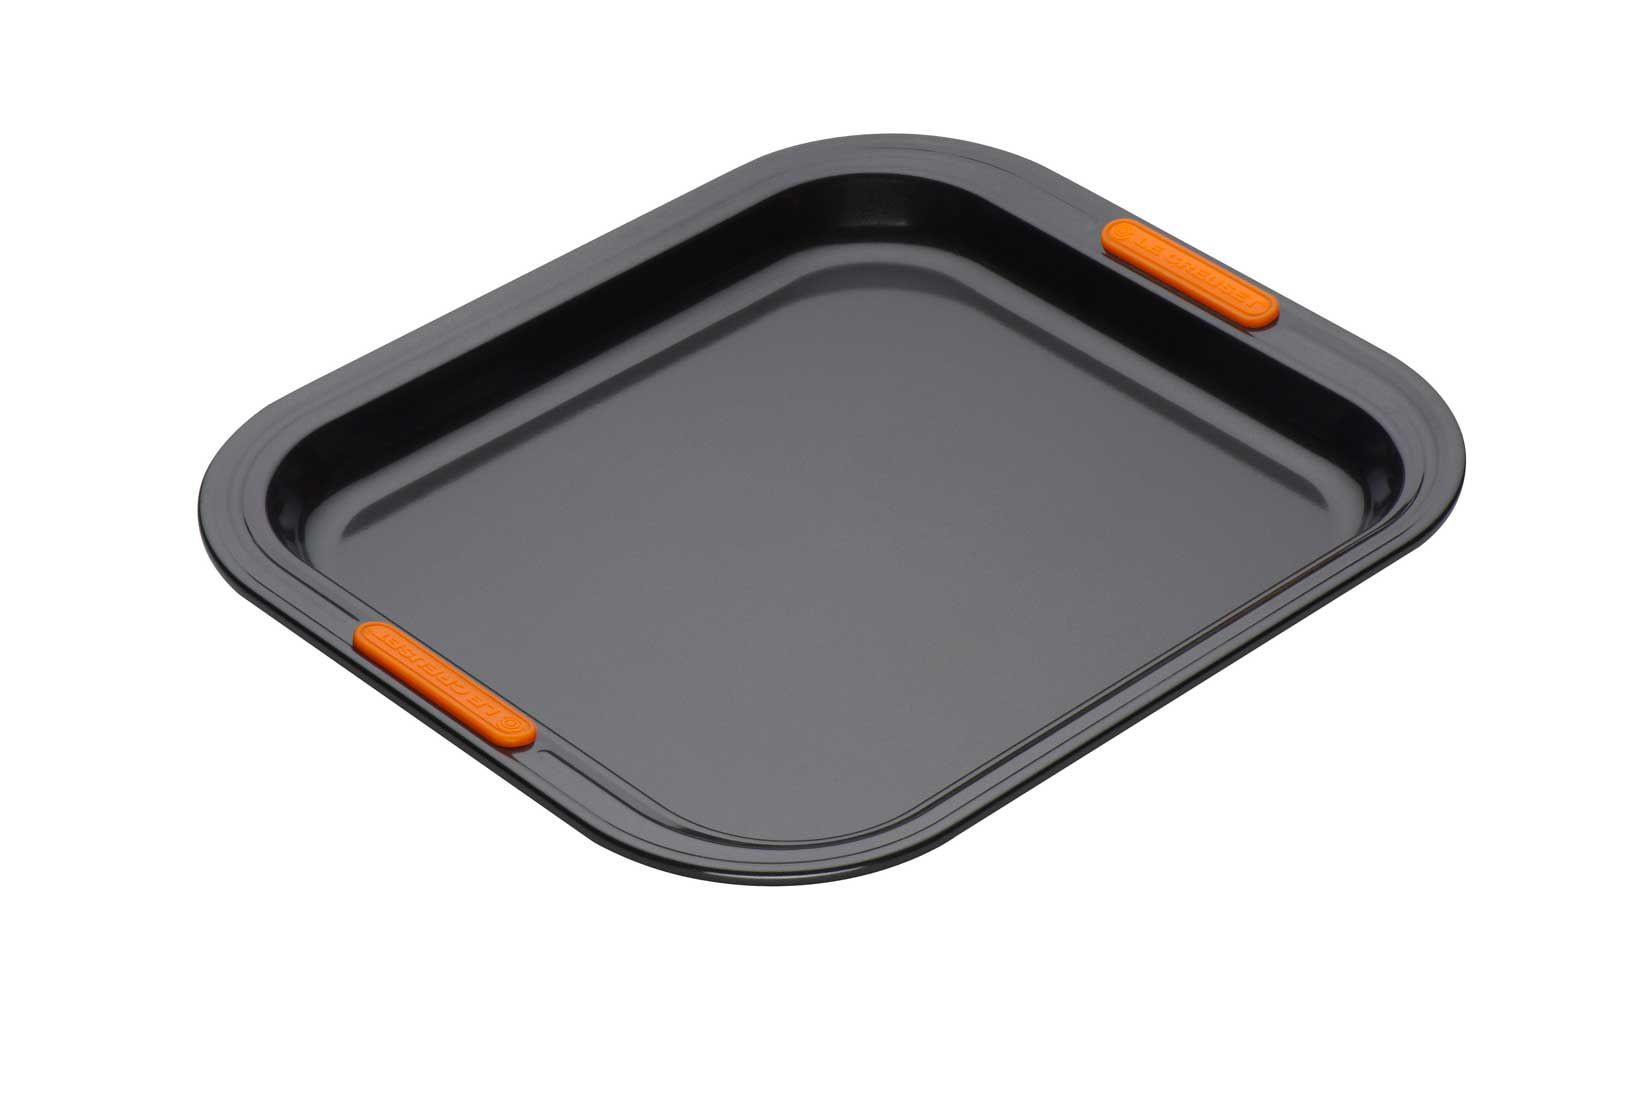 Bakeware rectangular oven tray